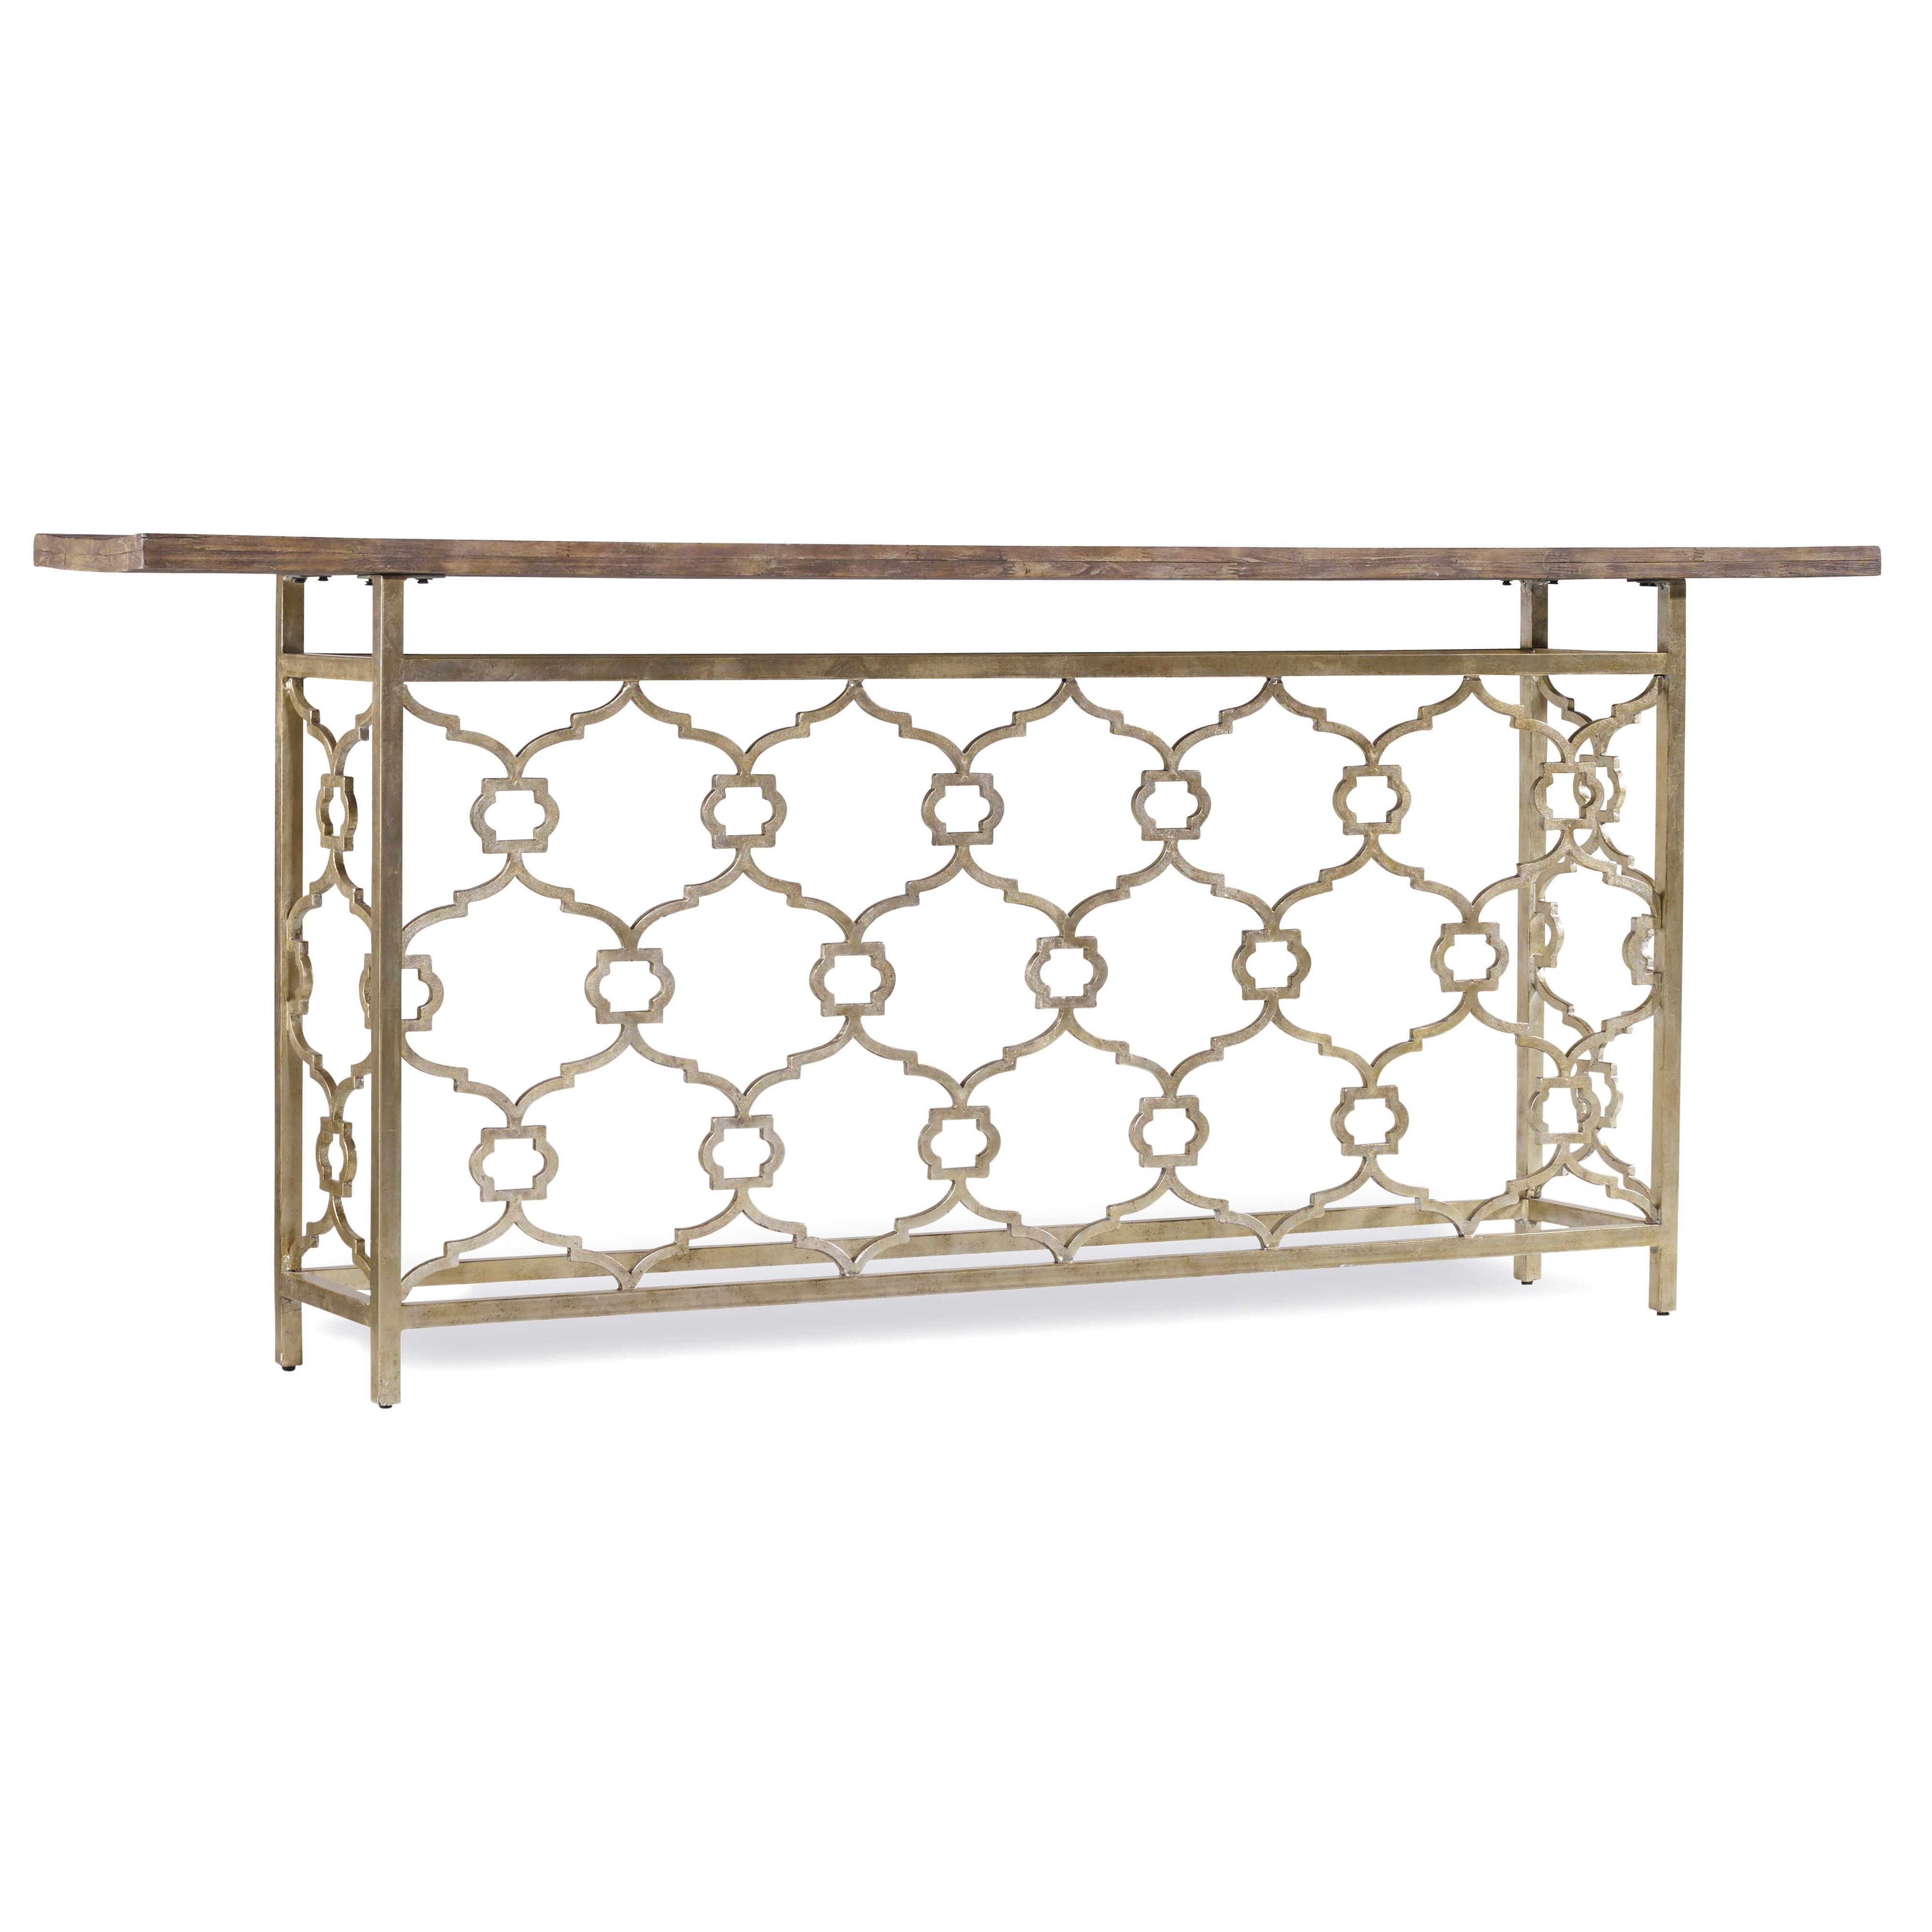 Hooker Furniture Mélange Landon Hall Console - Item Number: 638-85201